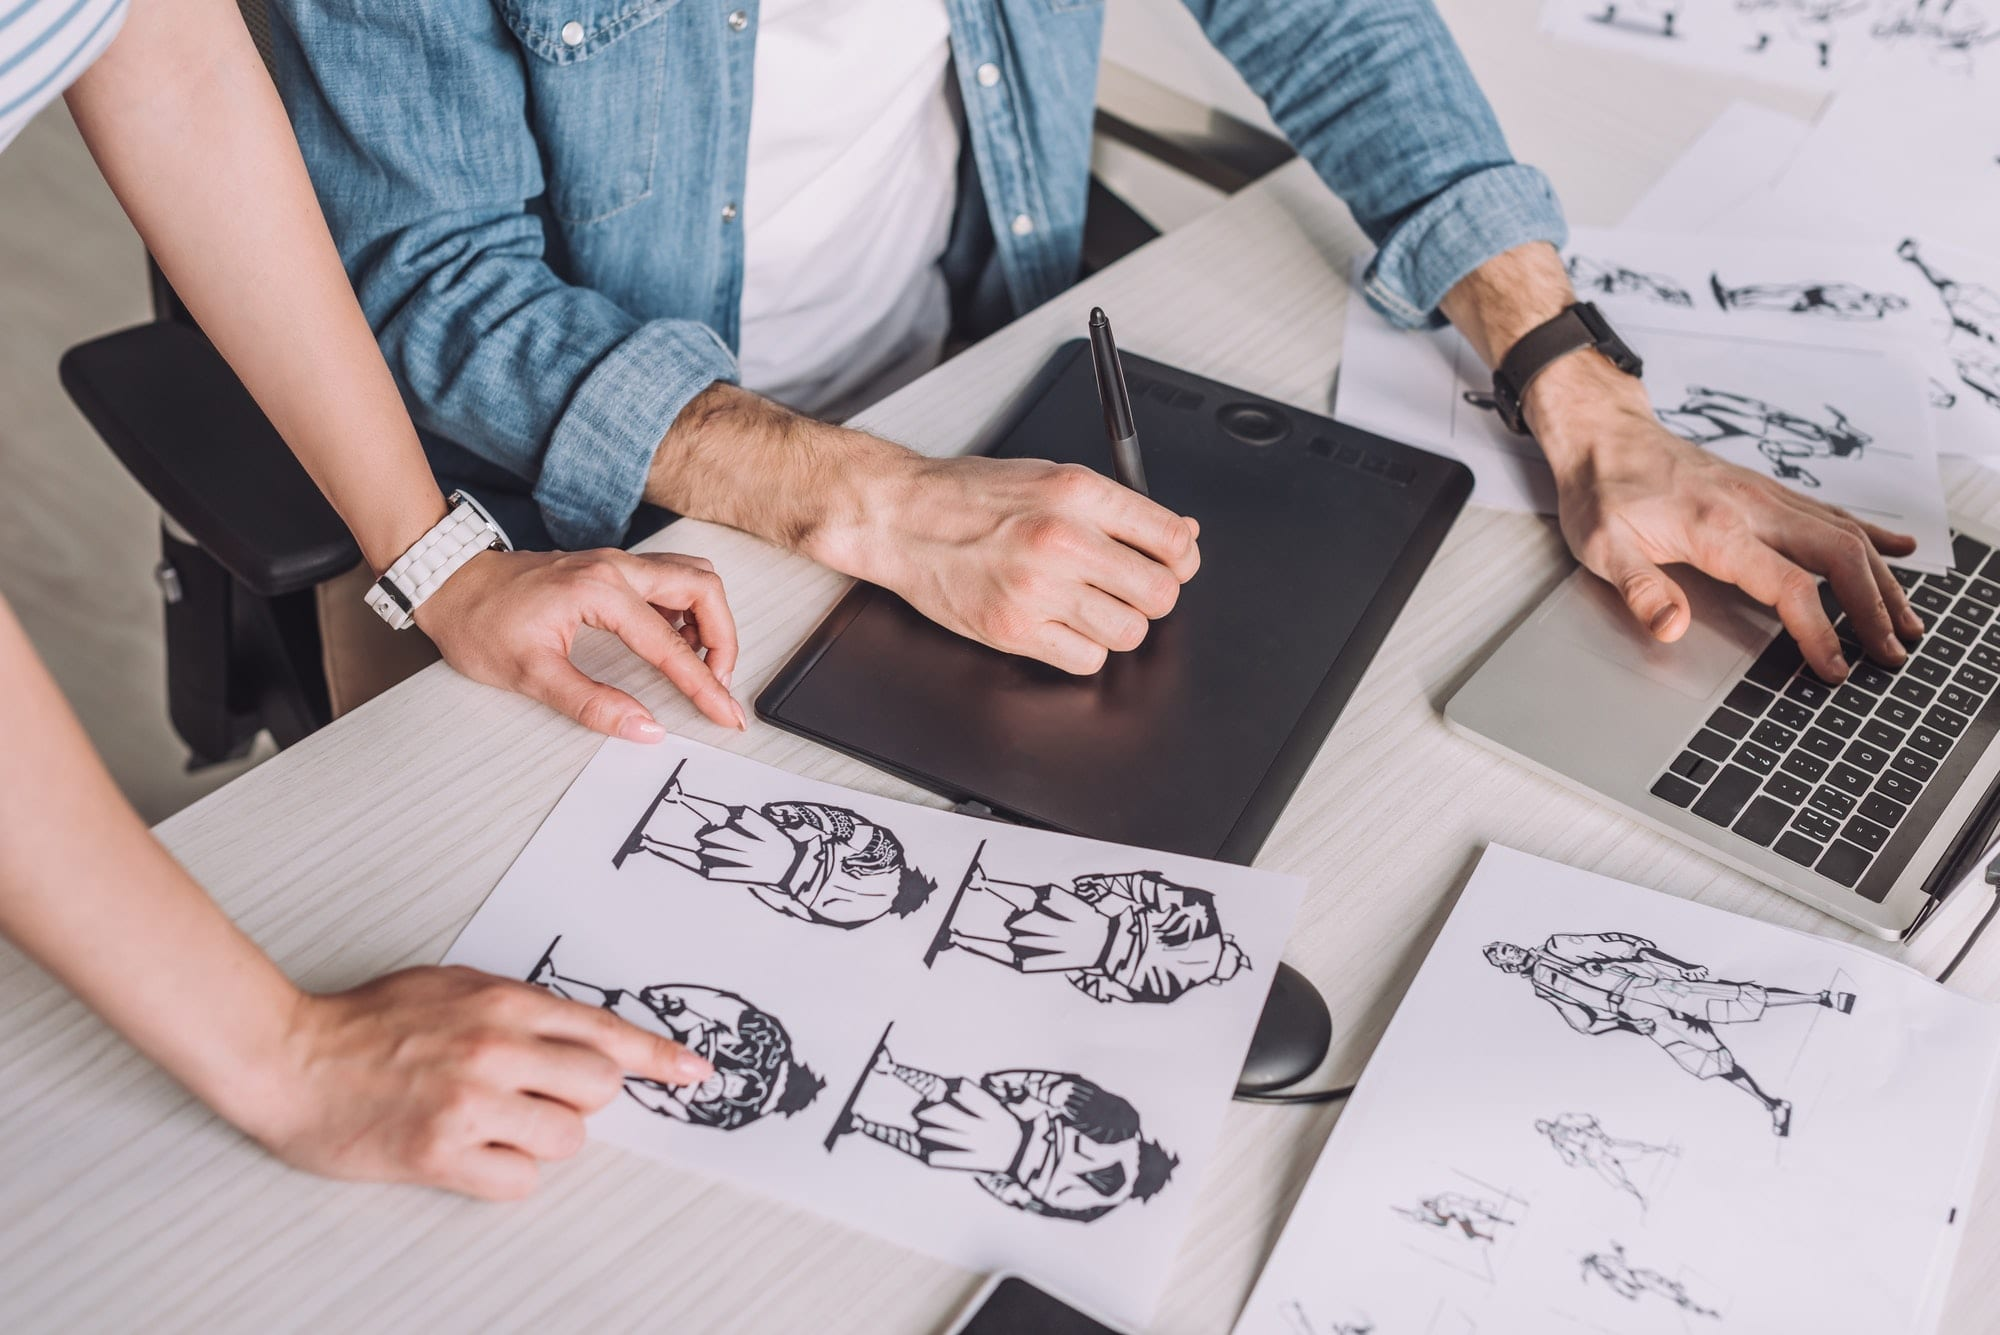 cropped view of illustrator pointing with finger at cartoon sketch near coworker